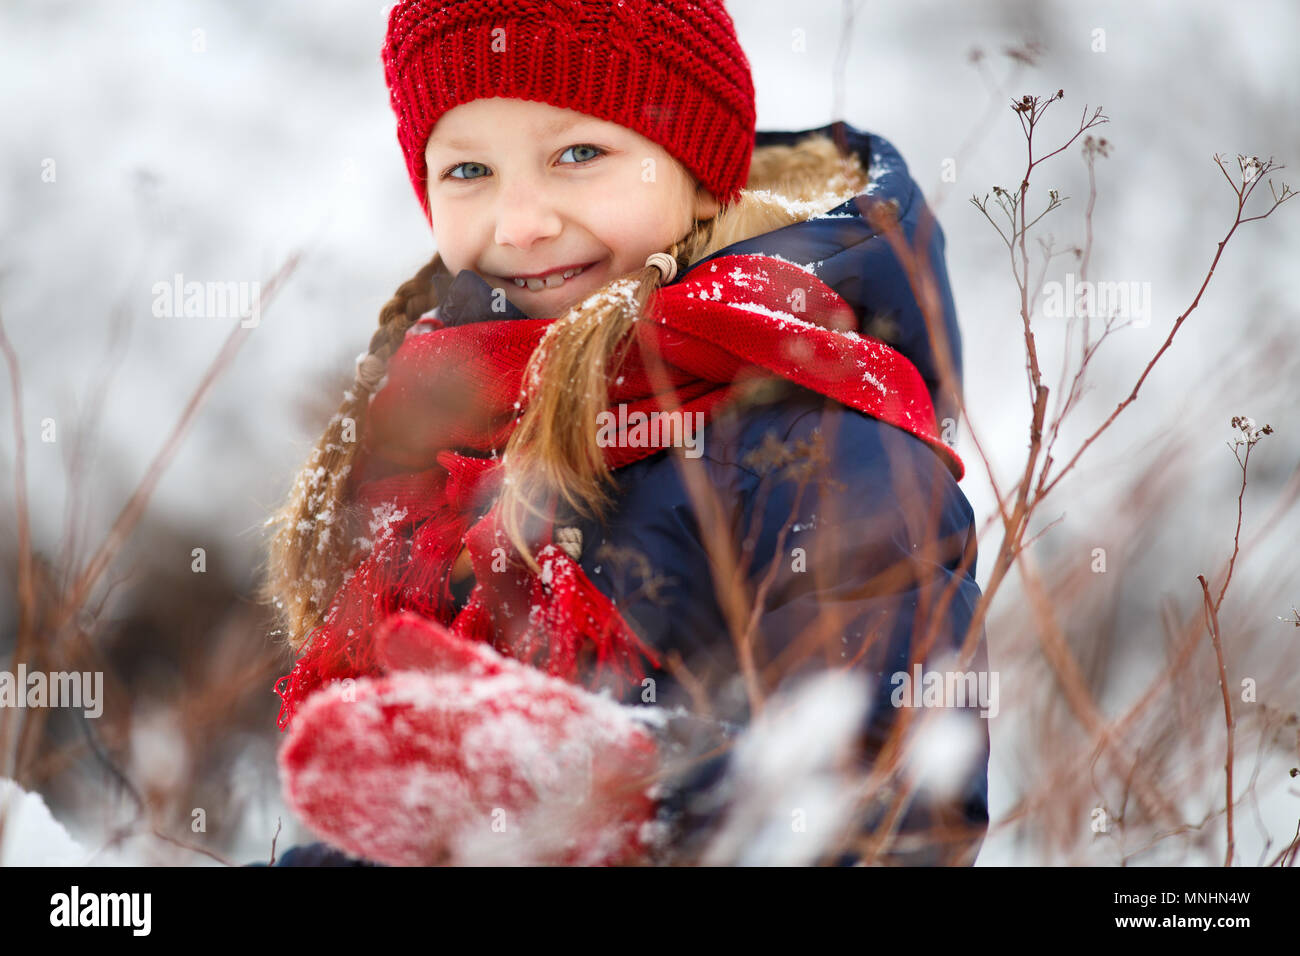 9a6ca351a Adorable little girl wearing warm clothes outdoors on beautiful ...